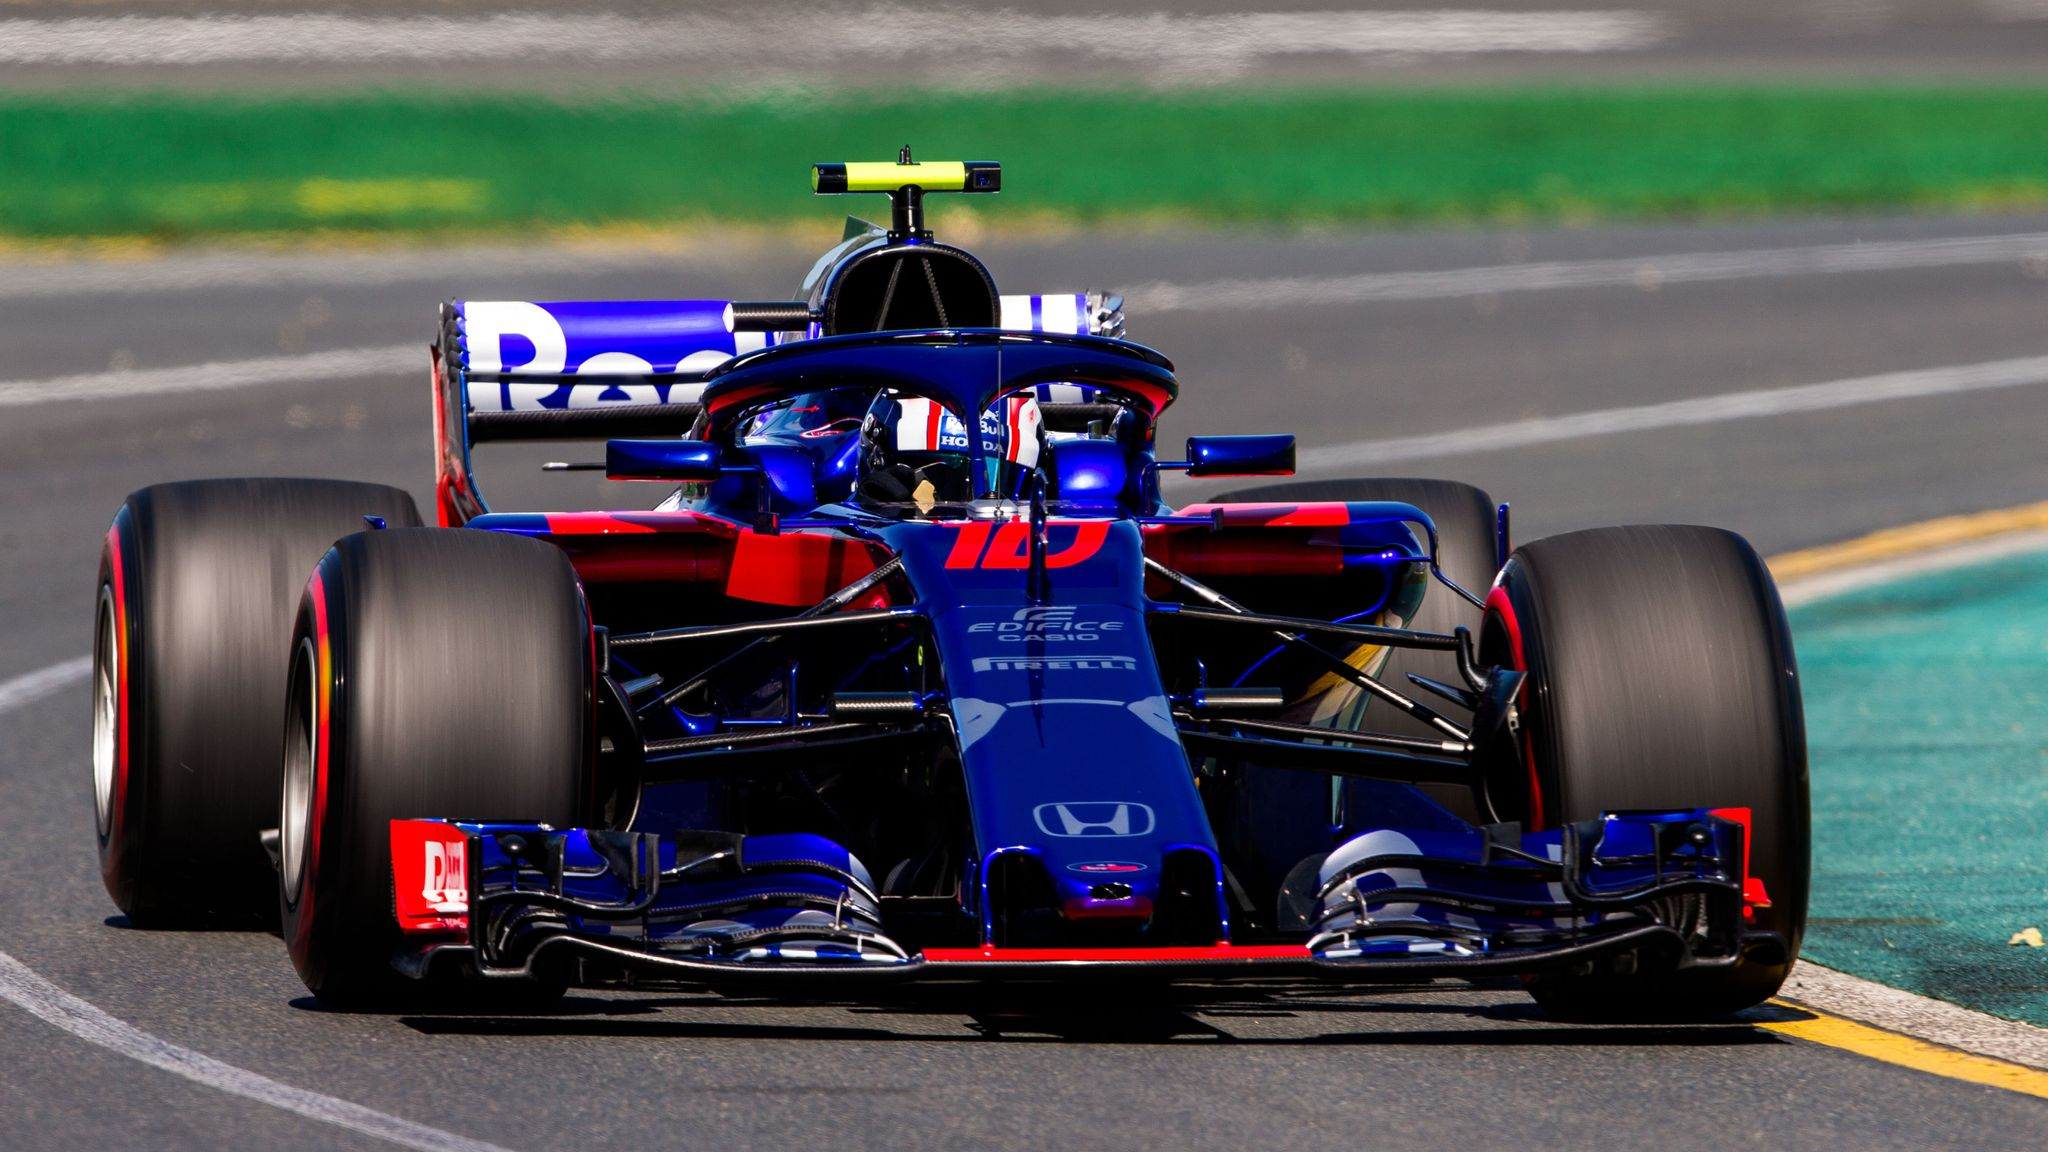 Bahrain GP: Toro Rosso's Pierre Gasly and Brendon Hartley to